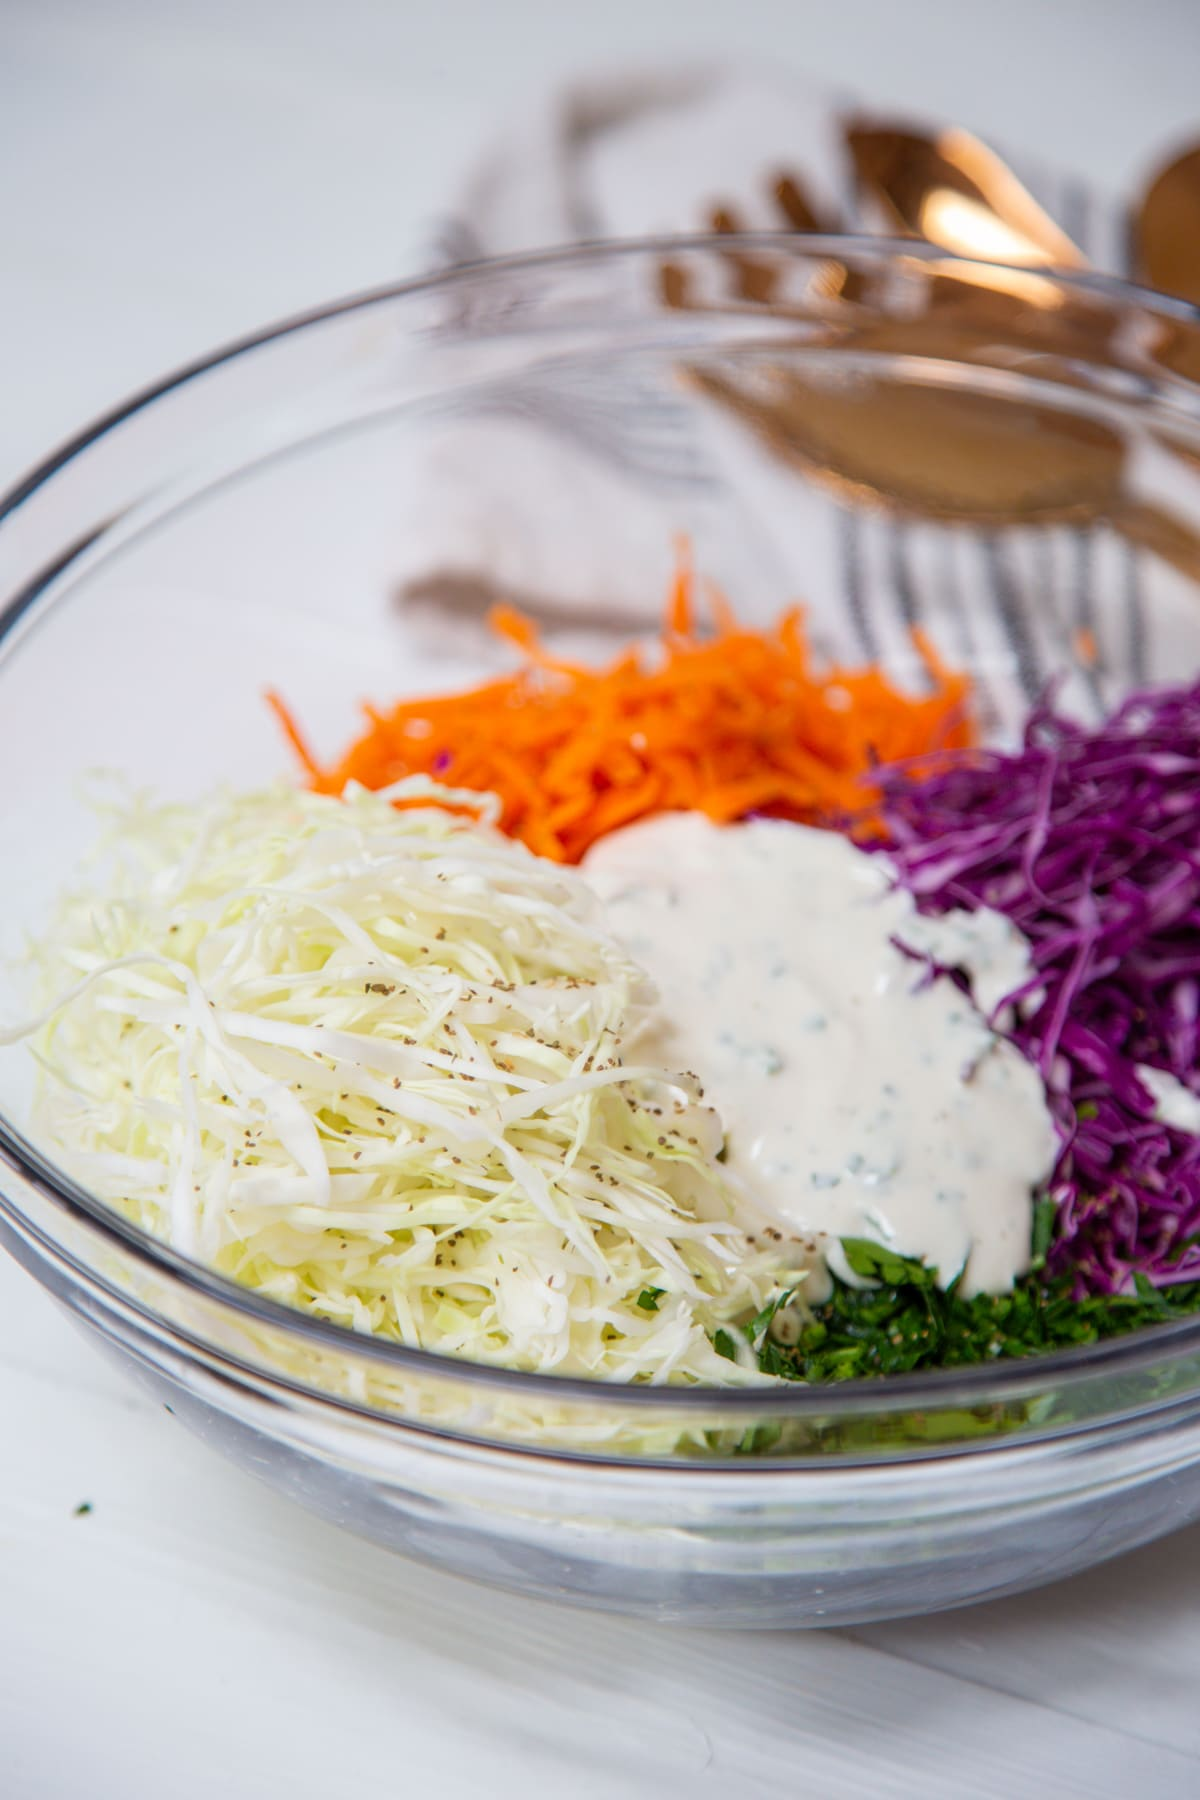 A clear glass bowl with shredded green and purple cabbage, grated carrots, chopped parsley, and a white creamy dressing.